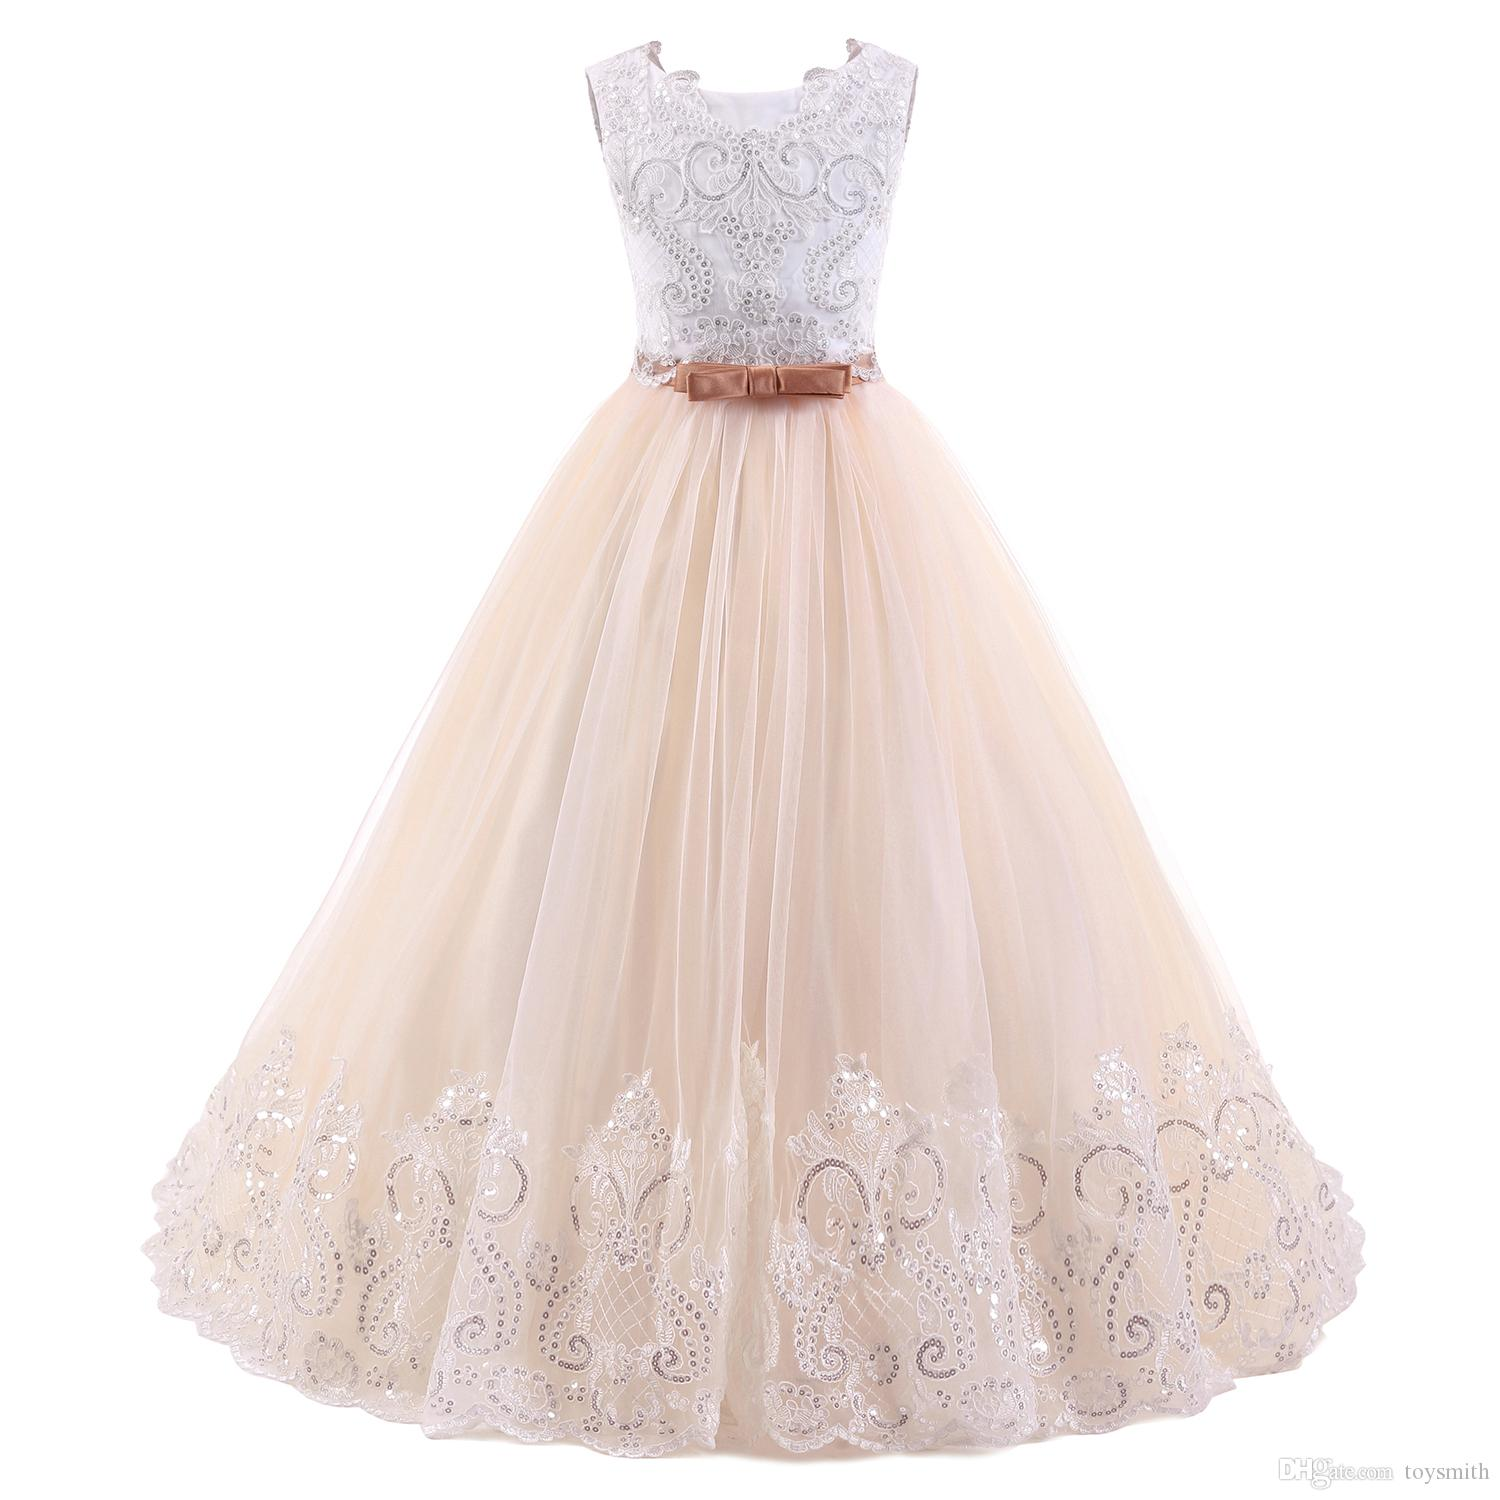 2018 New Fashion Tulle Jewel Applique Sleeveless Sequins Flower Girl Dresses Children's Pageant Dress White Bow Free Shipping